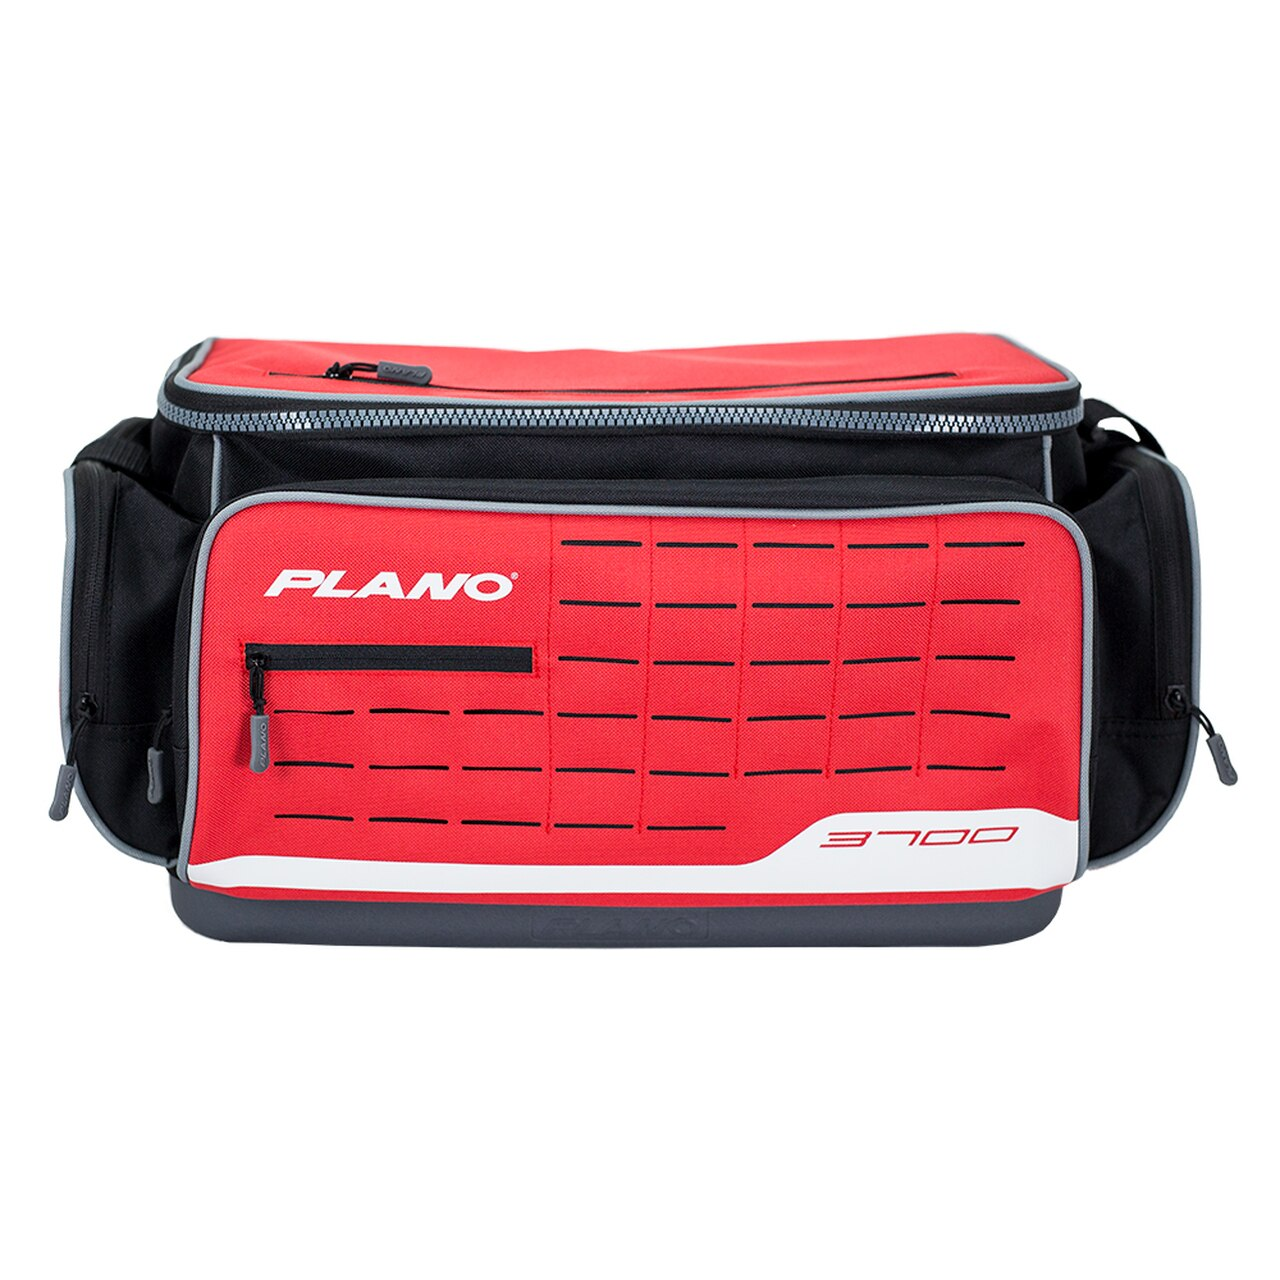 Plano PLABW470, Weekend Series 3700 DLX Case